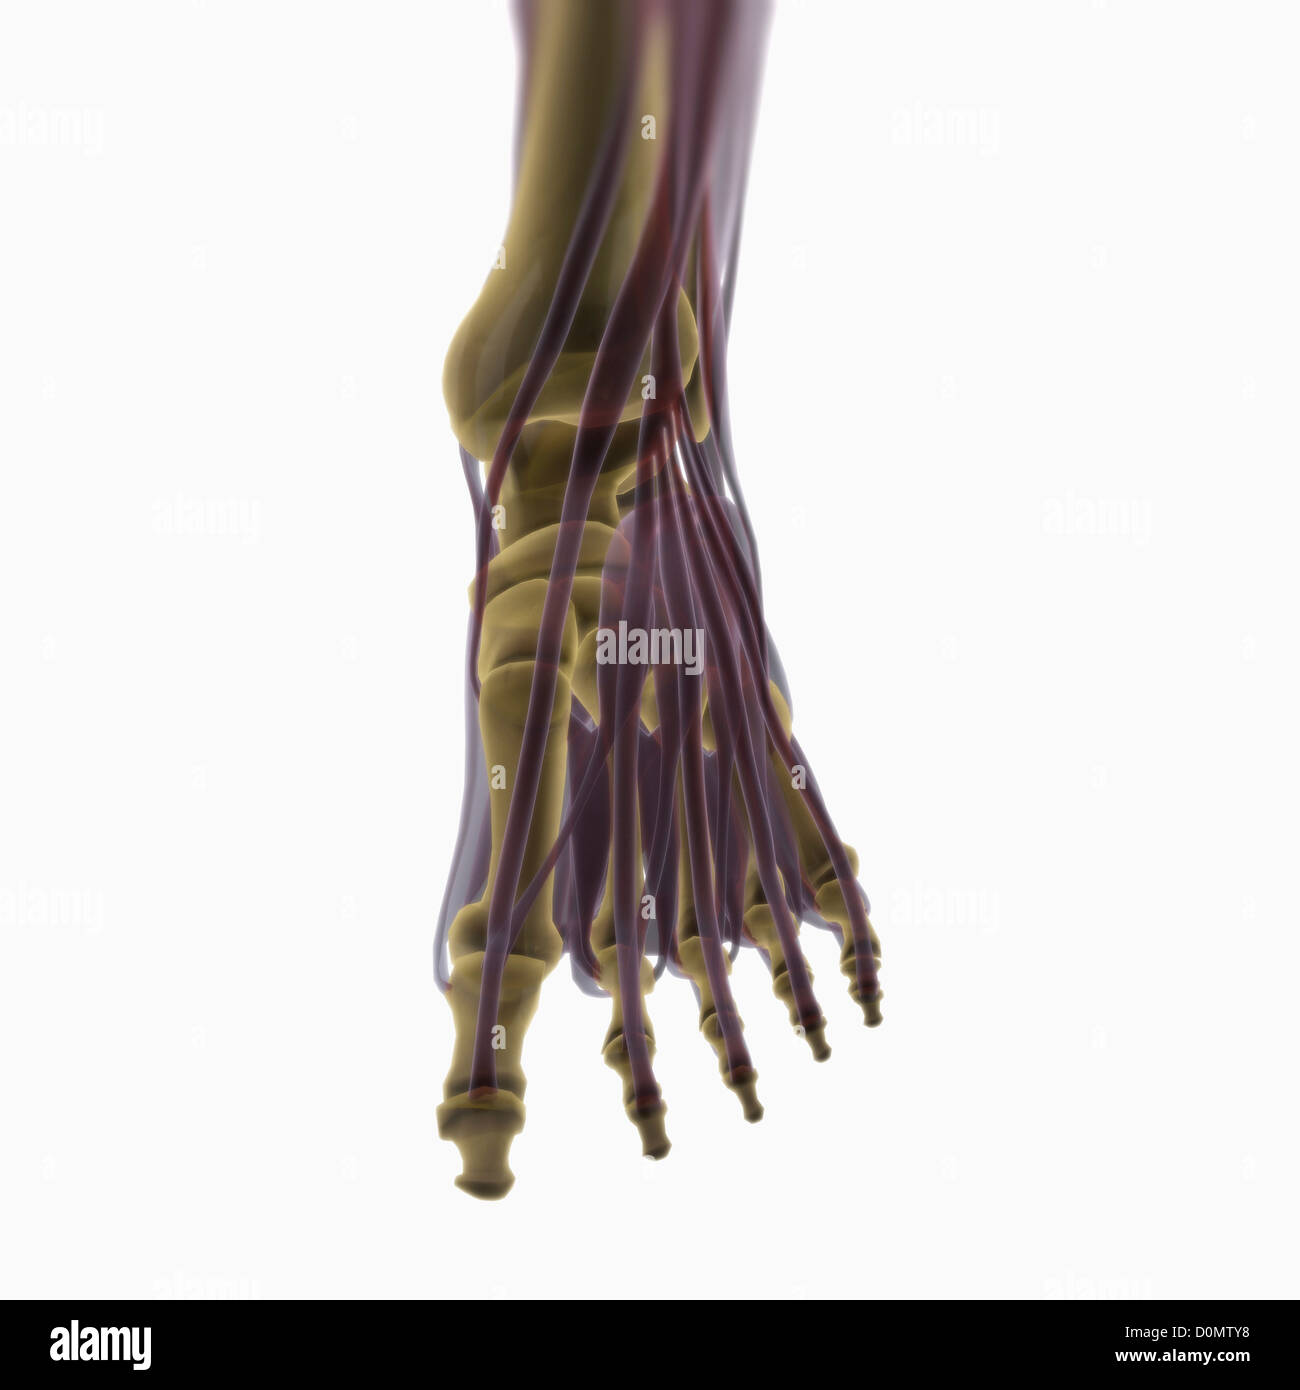 Anatomical model showing the muscles of the left foot. - Stock Image